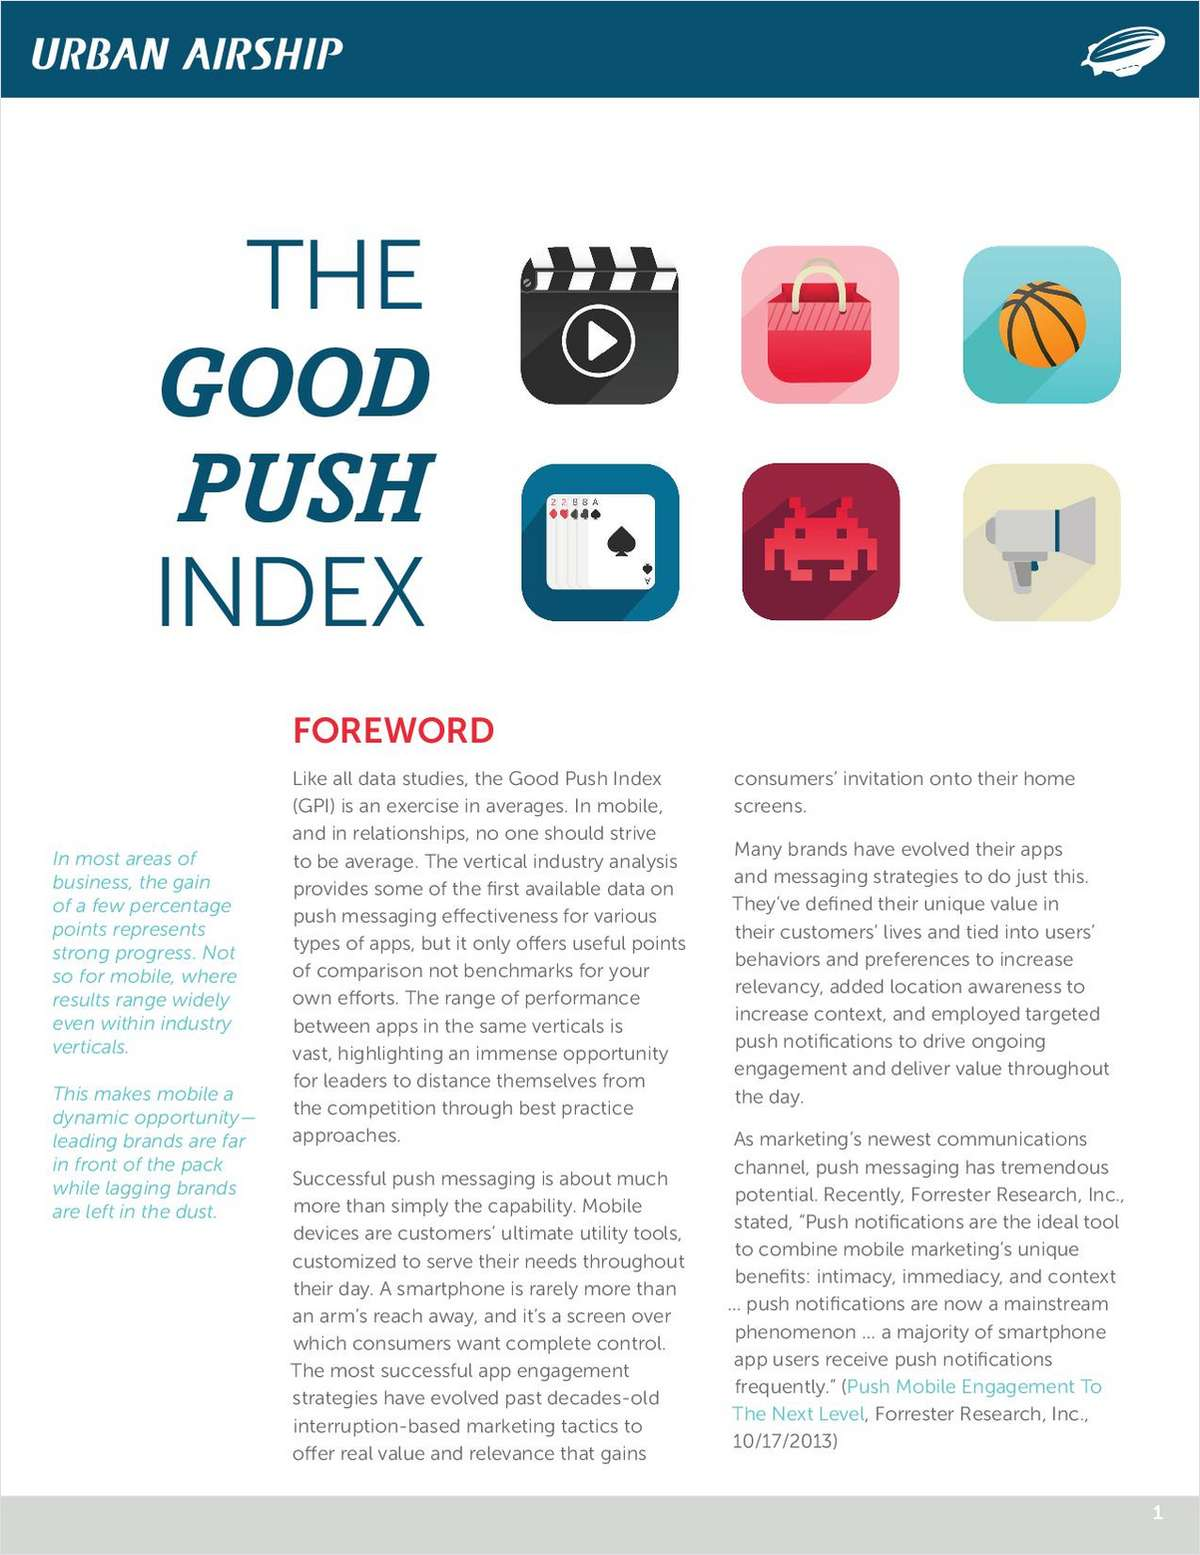 The Good Push Index